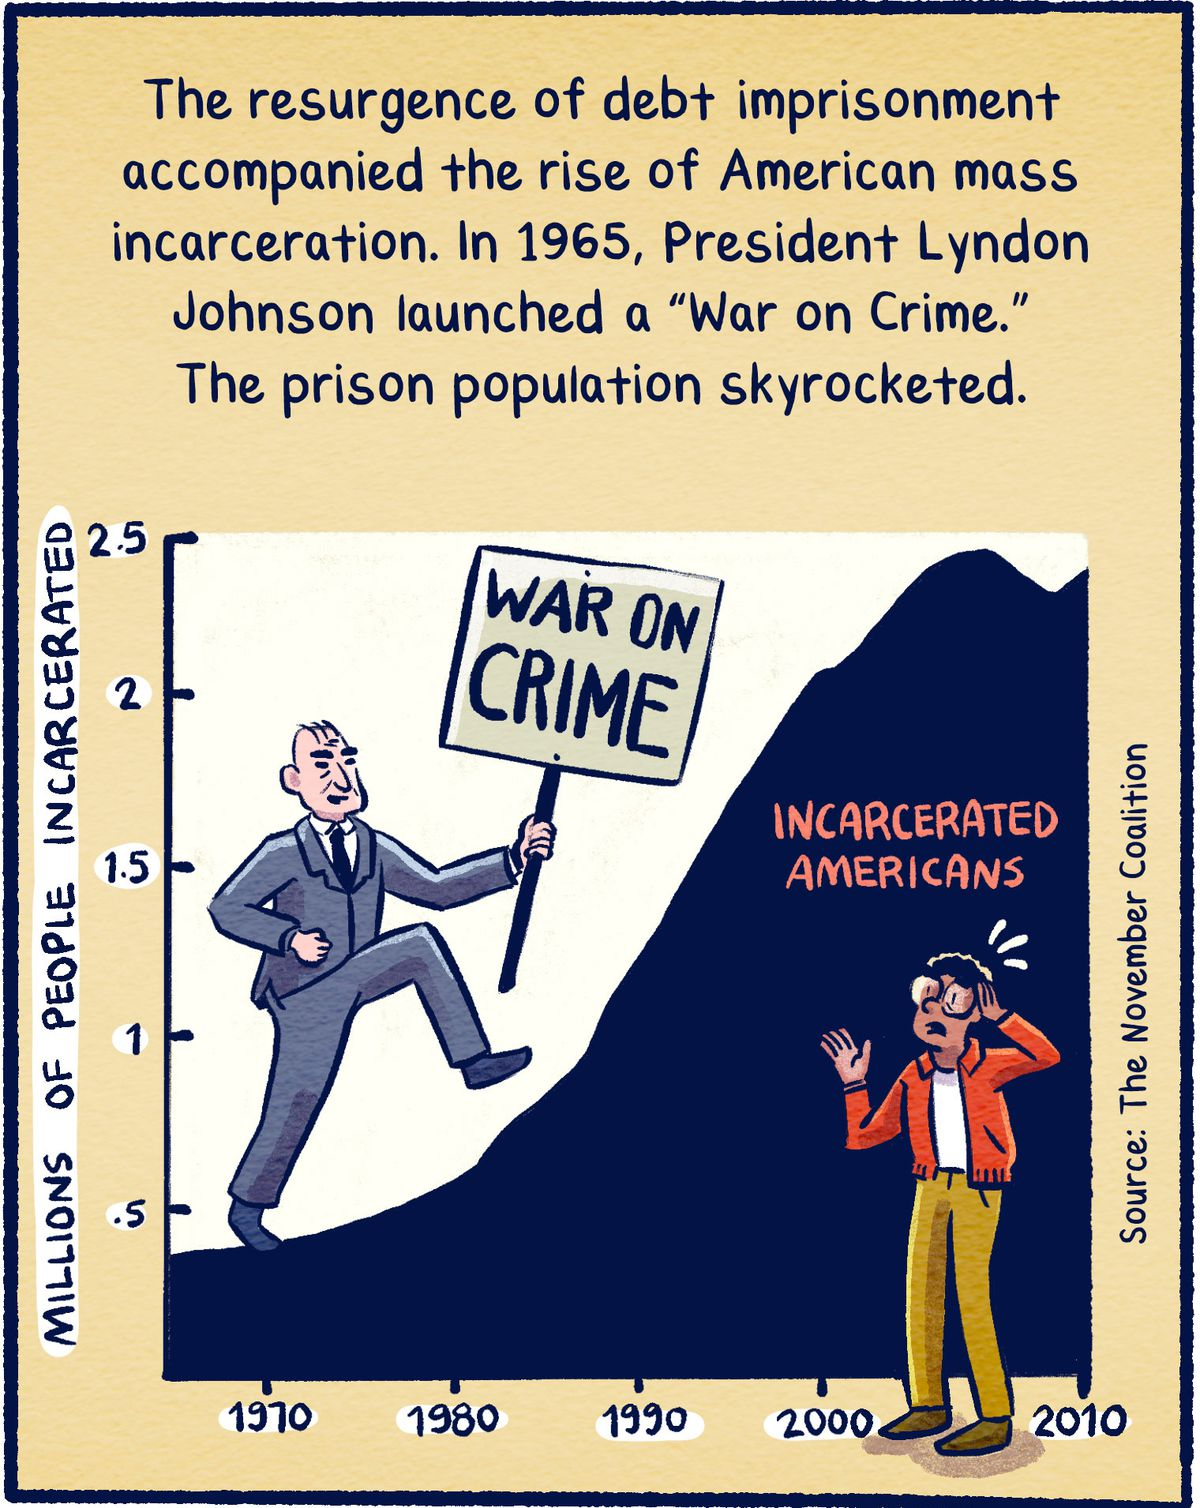 """The resurgence of debt imprisonment accompanied the rise of American mass incarceration. In 1965, President Lyndon Johnson launched a """"War on Crime."""" The prison population skyrocketed."""